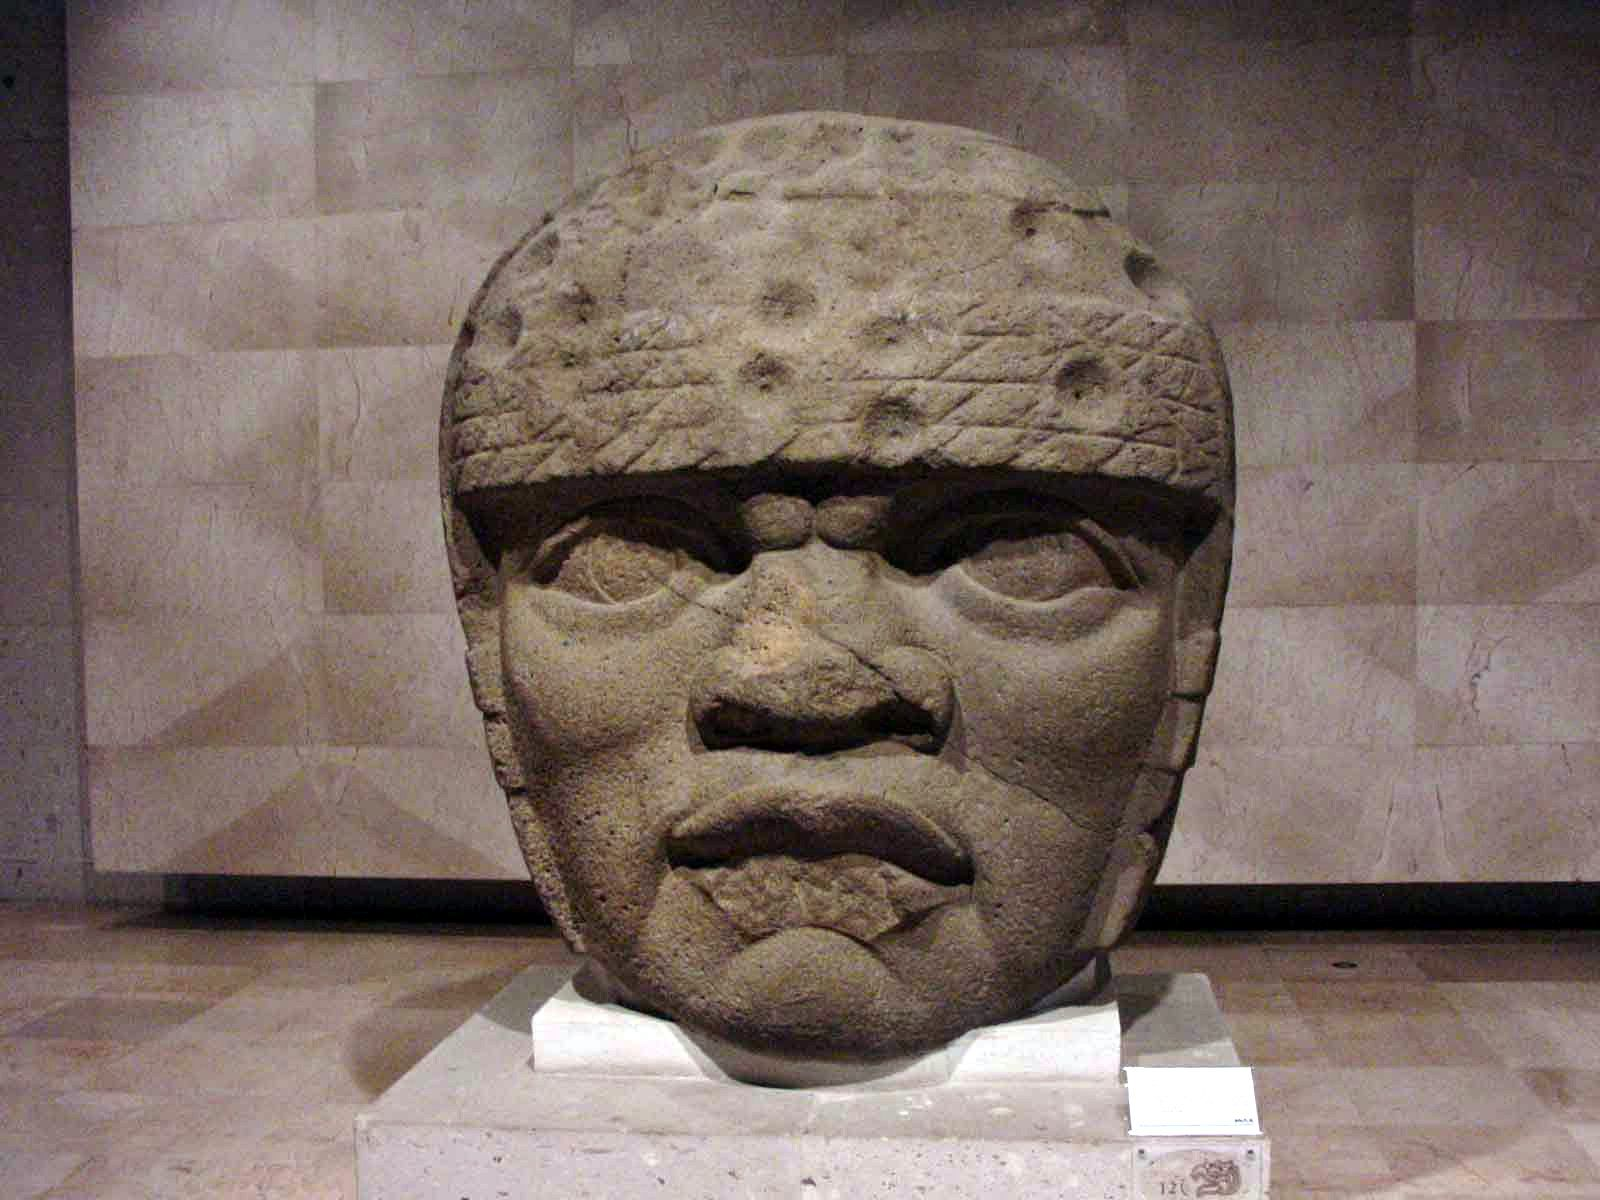 Incredible ancient artifacts of lost civilizations